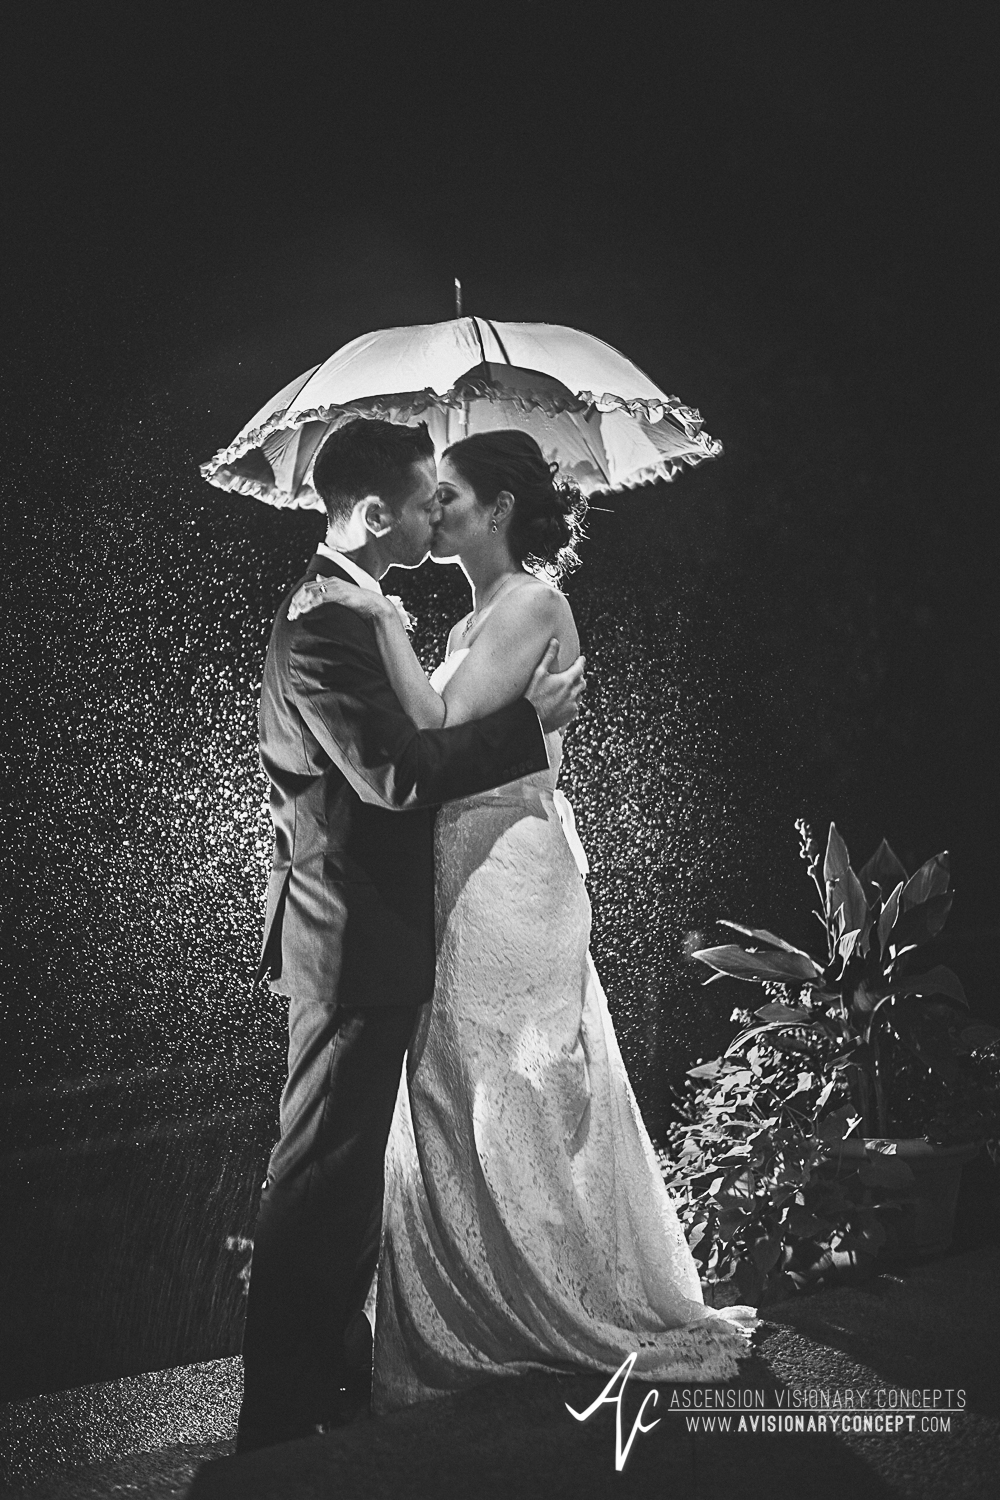 Buffalo Wedding Photography Spring Lake Winery 082 - Wedding Bride Groom Rainy Day Wedding Umbrella Kiss Backlit B&W Black and White.jpg